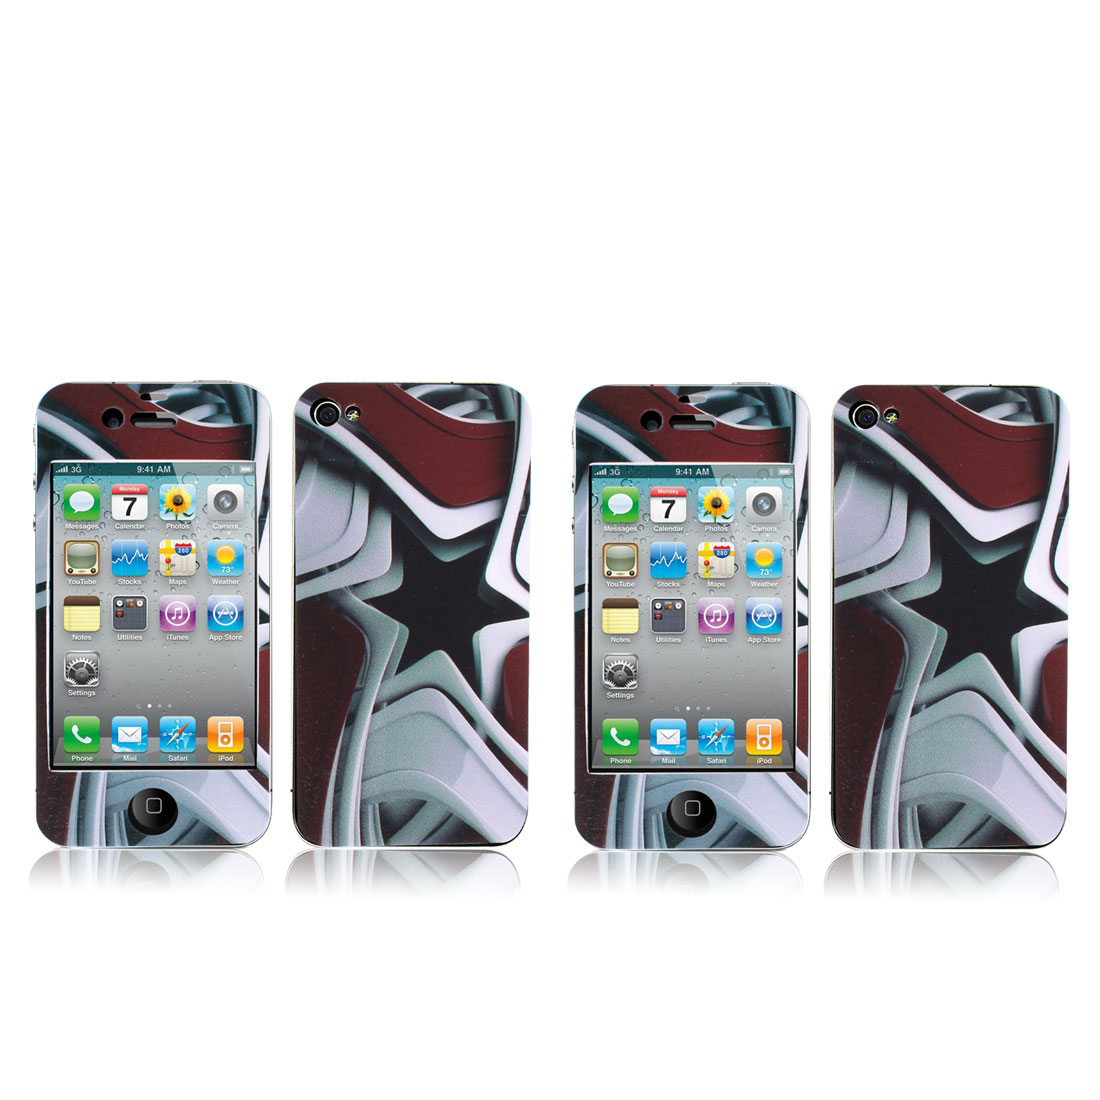 Tri Color Front Back Sticker Cover Film Guard 2 Pcs for iPhone 4 4G 4S 4GS